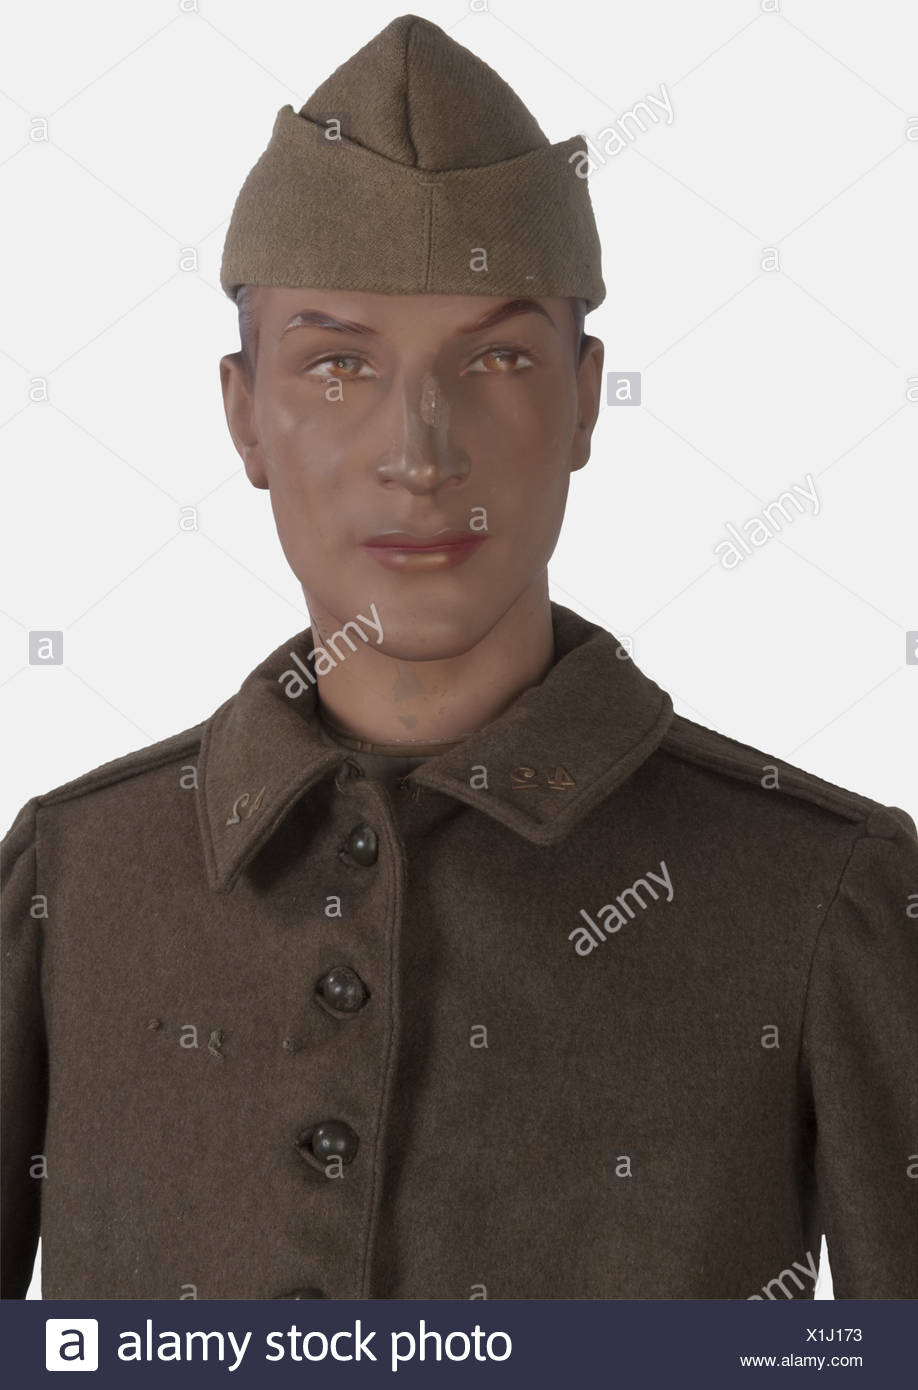 A 1940 French soldier, on mannequin, including a